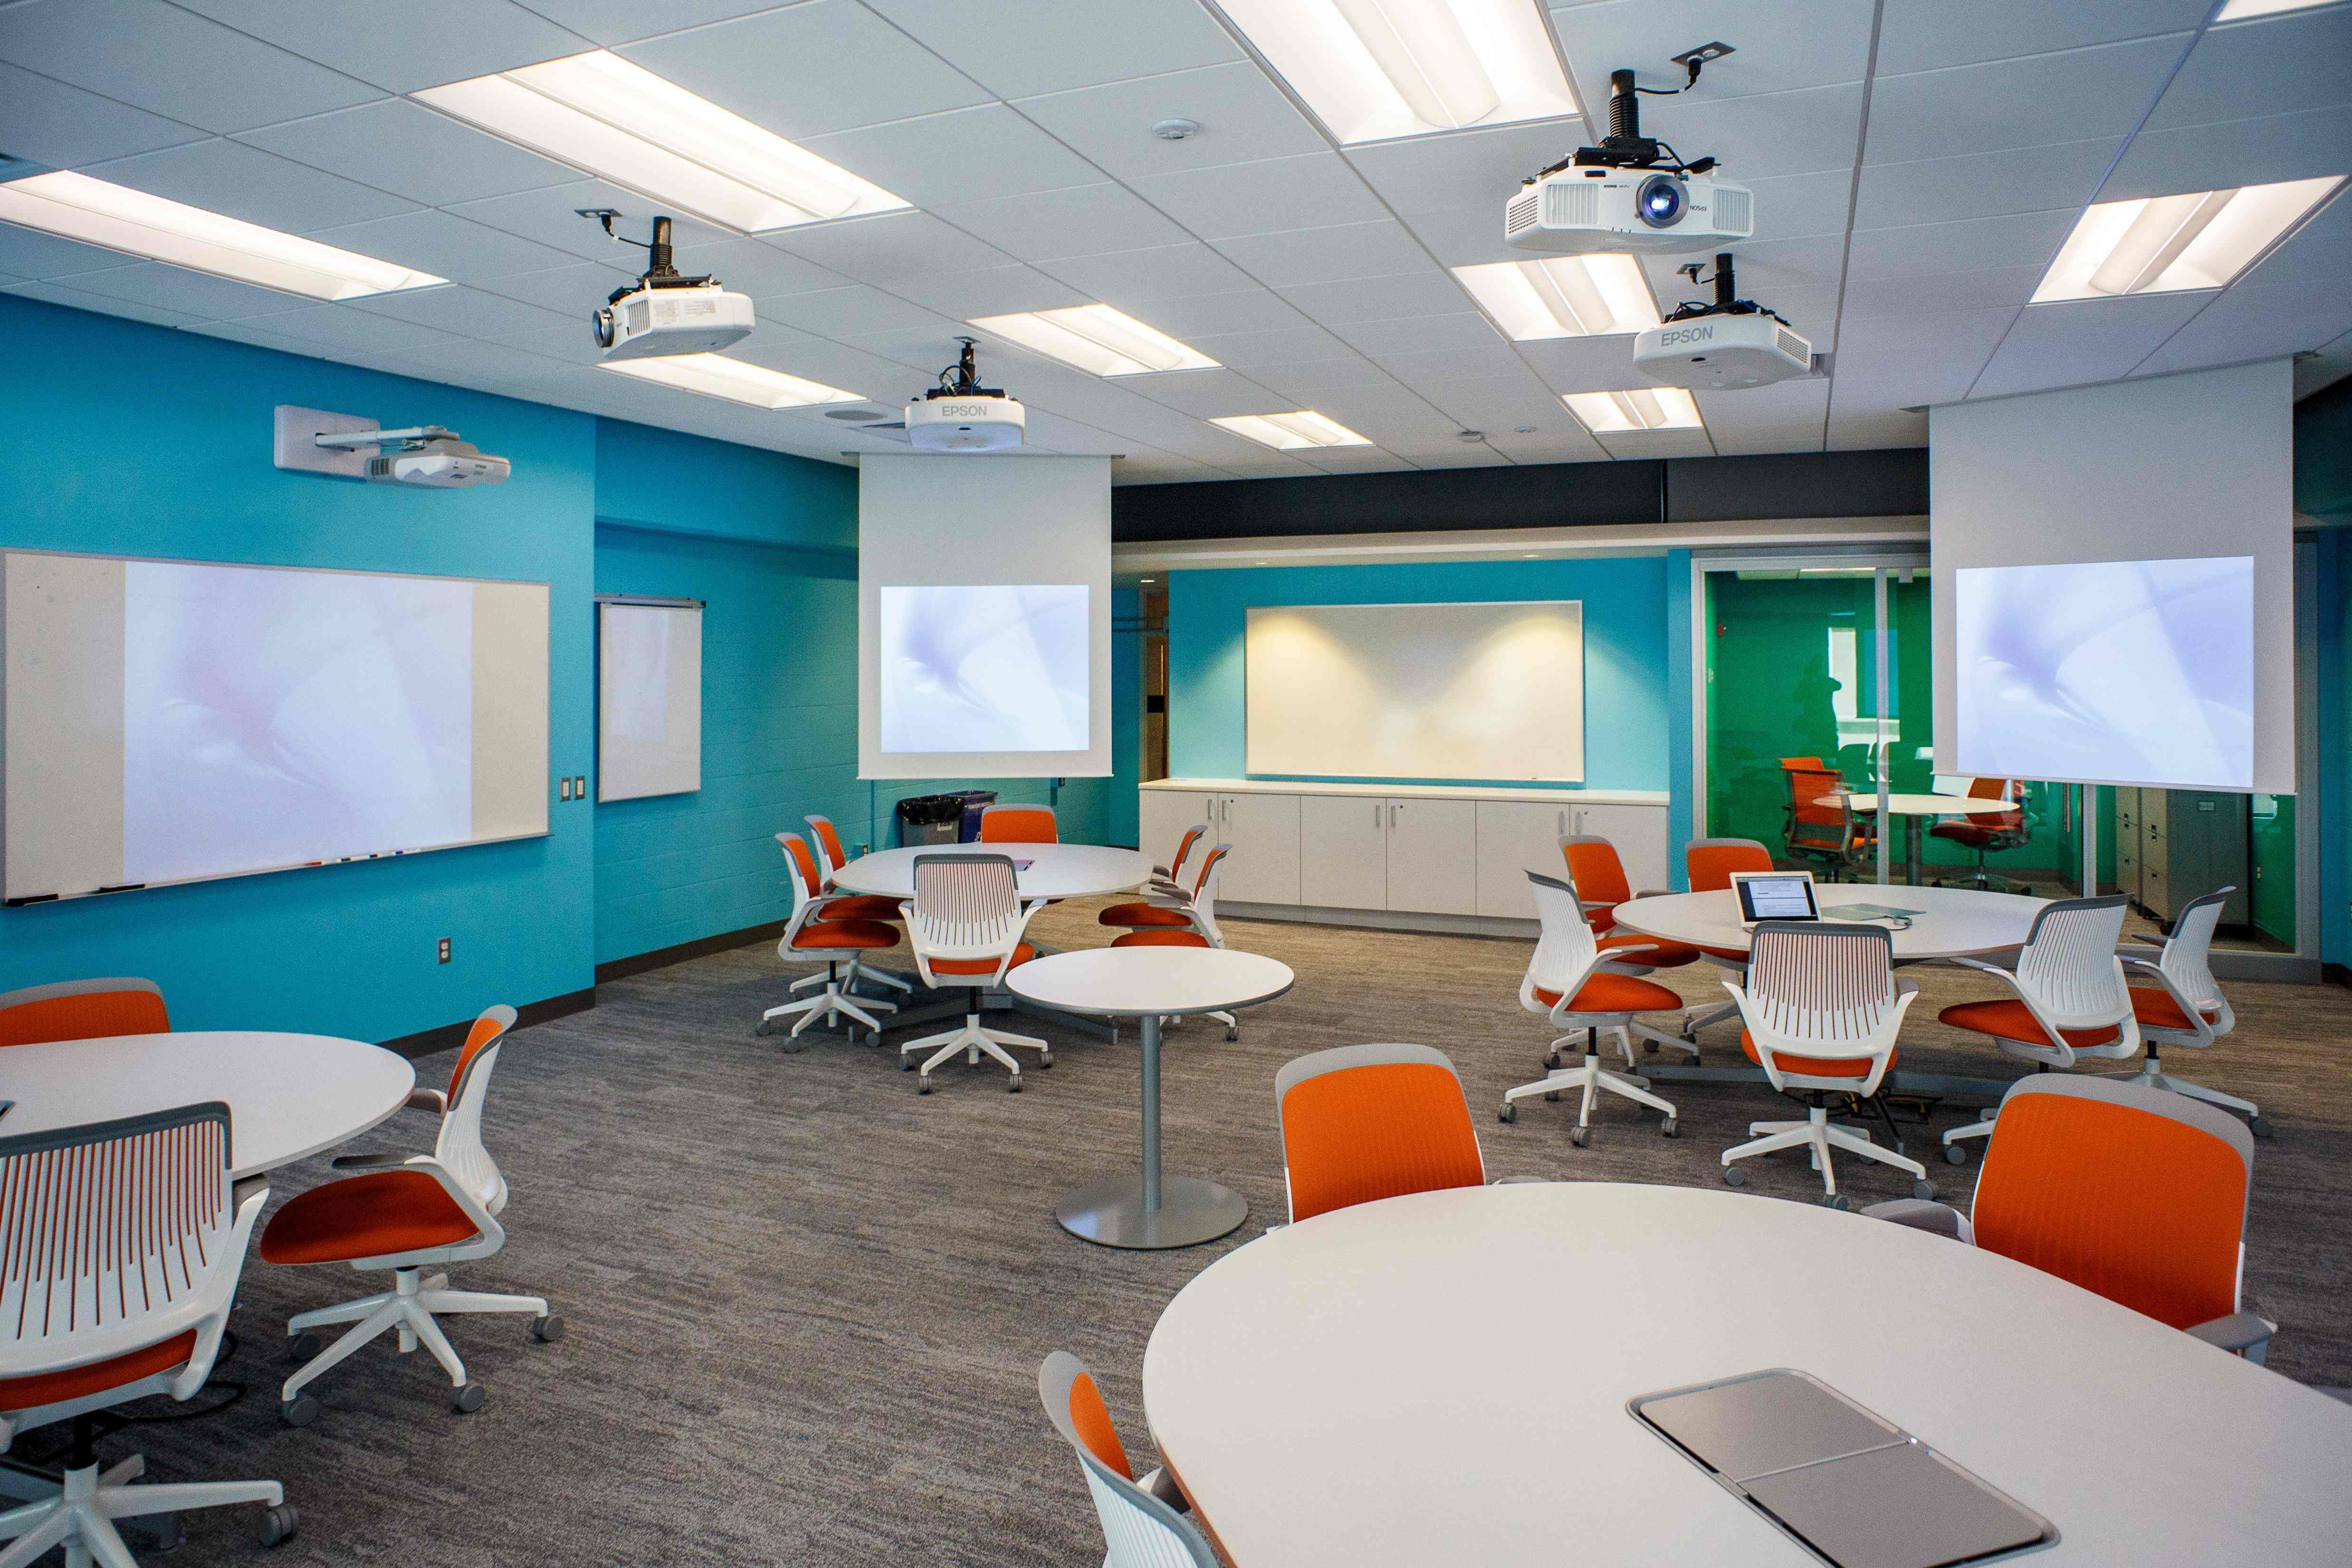 Classroom Design Concept ~ Best innovation lab ideas on pinterest